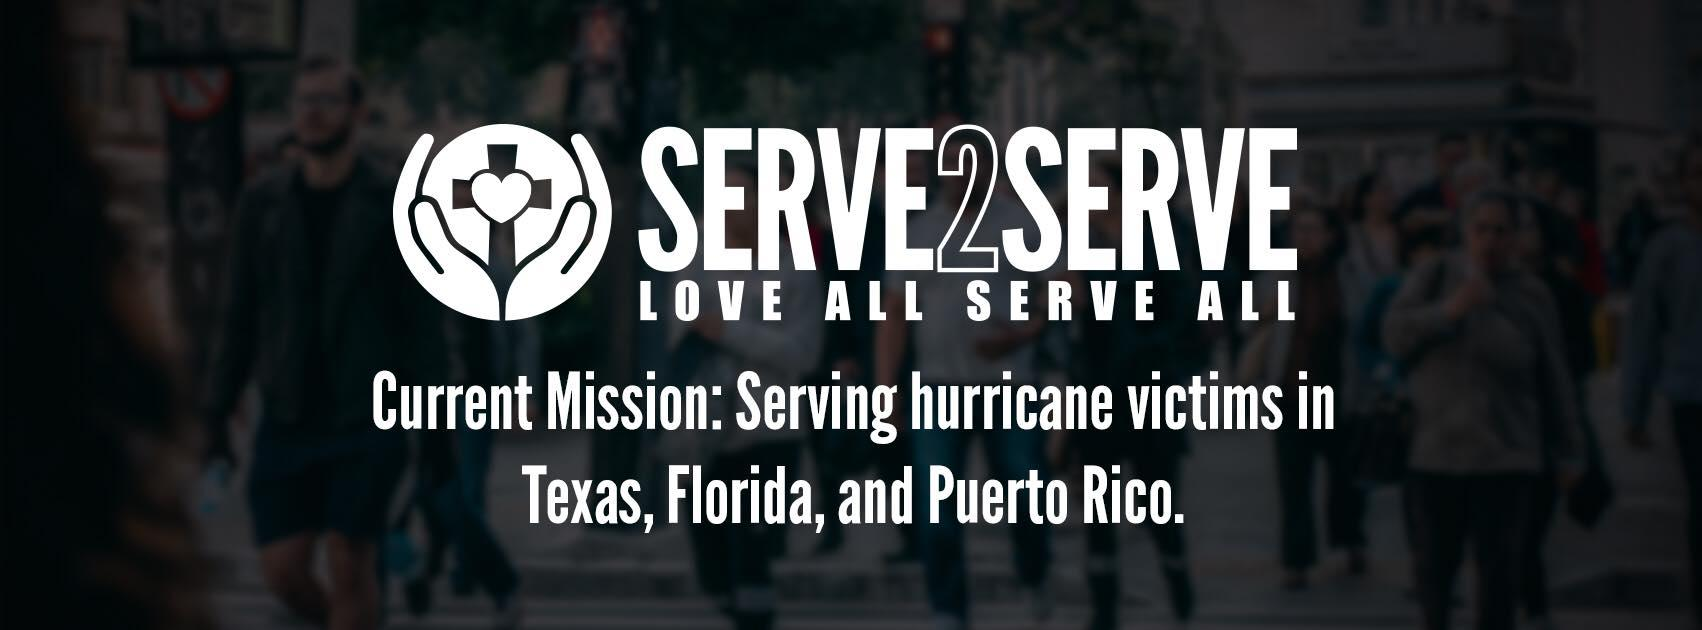 Serve 2 Serve Ministries